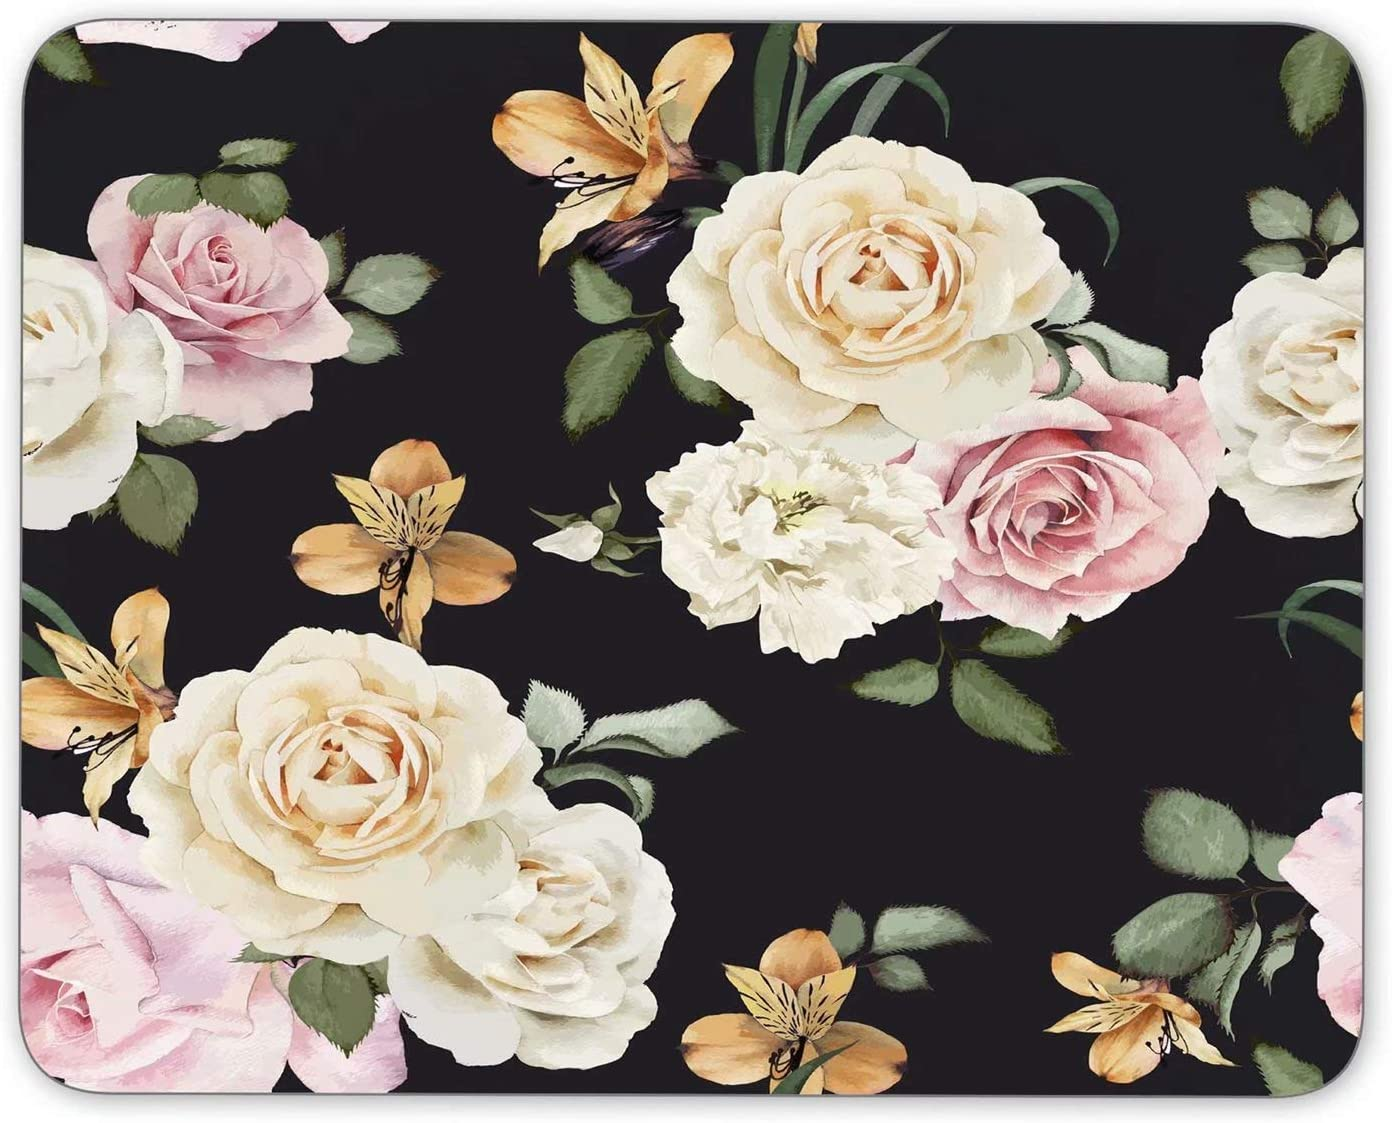 Rose Flower Mouse Pad Customized Base Non-Slip Rubber Mousepad M Inventory cleanup selling sale Max 71% OFF